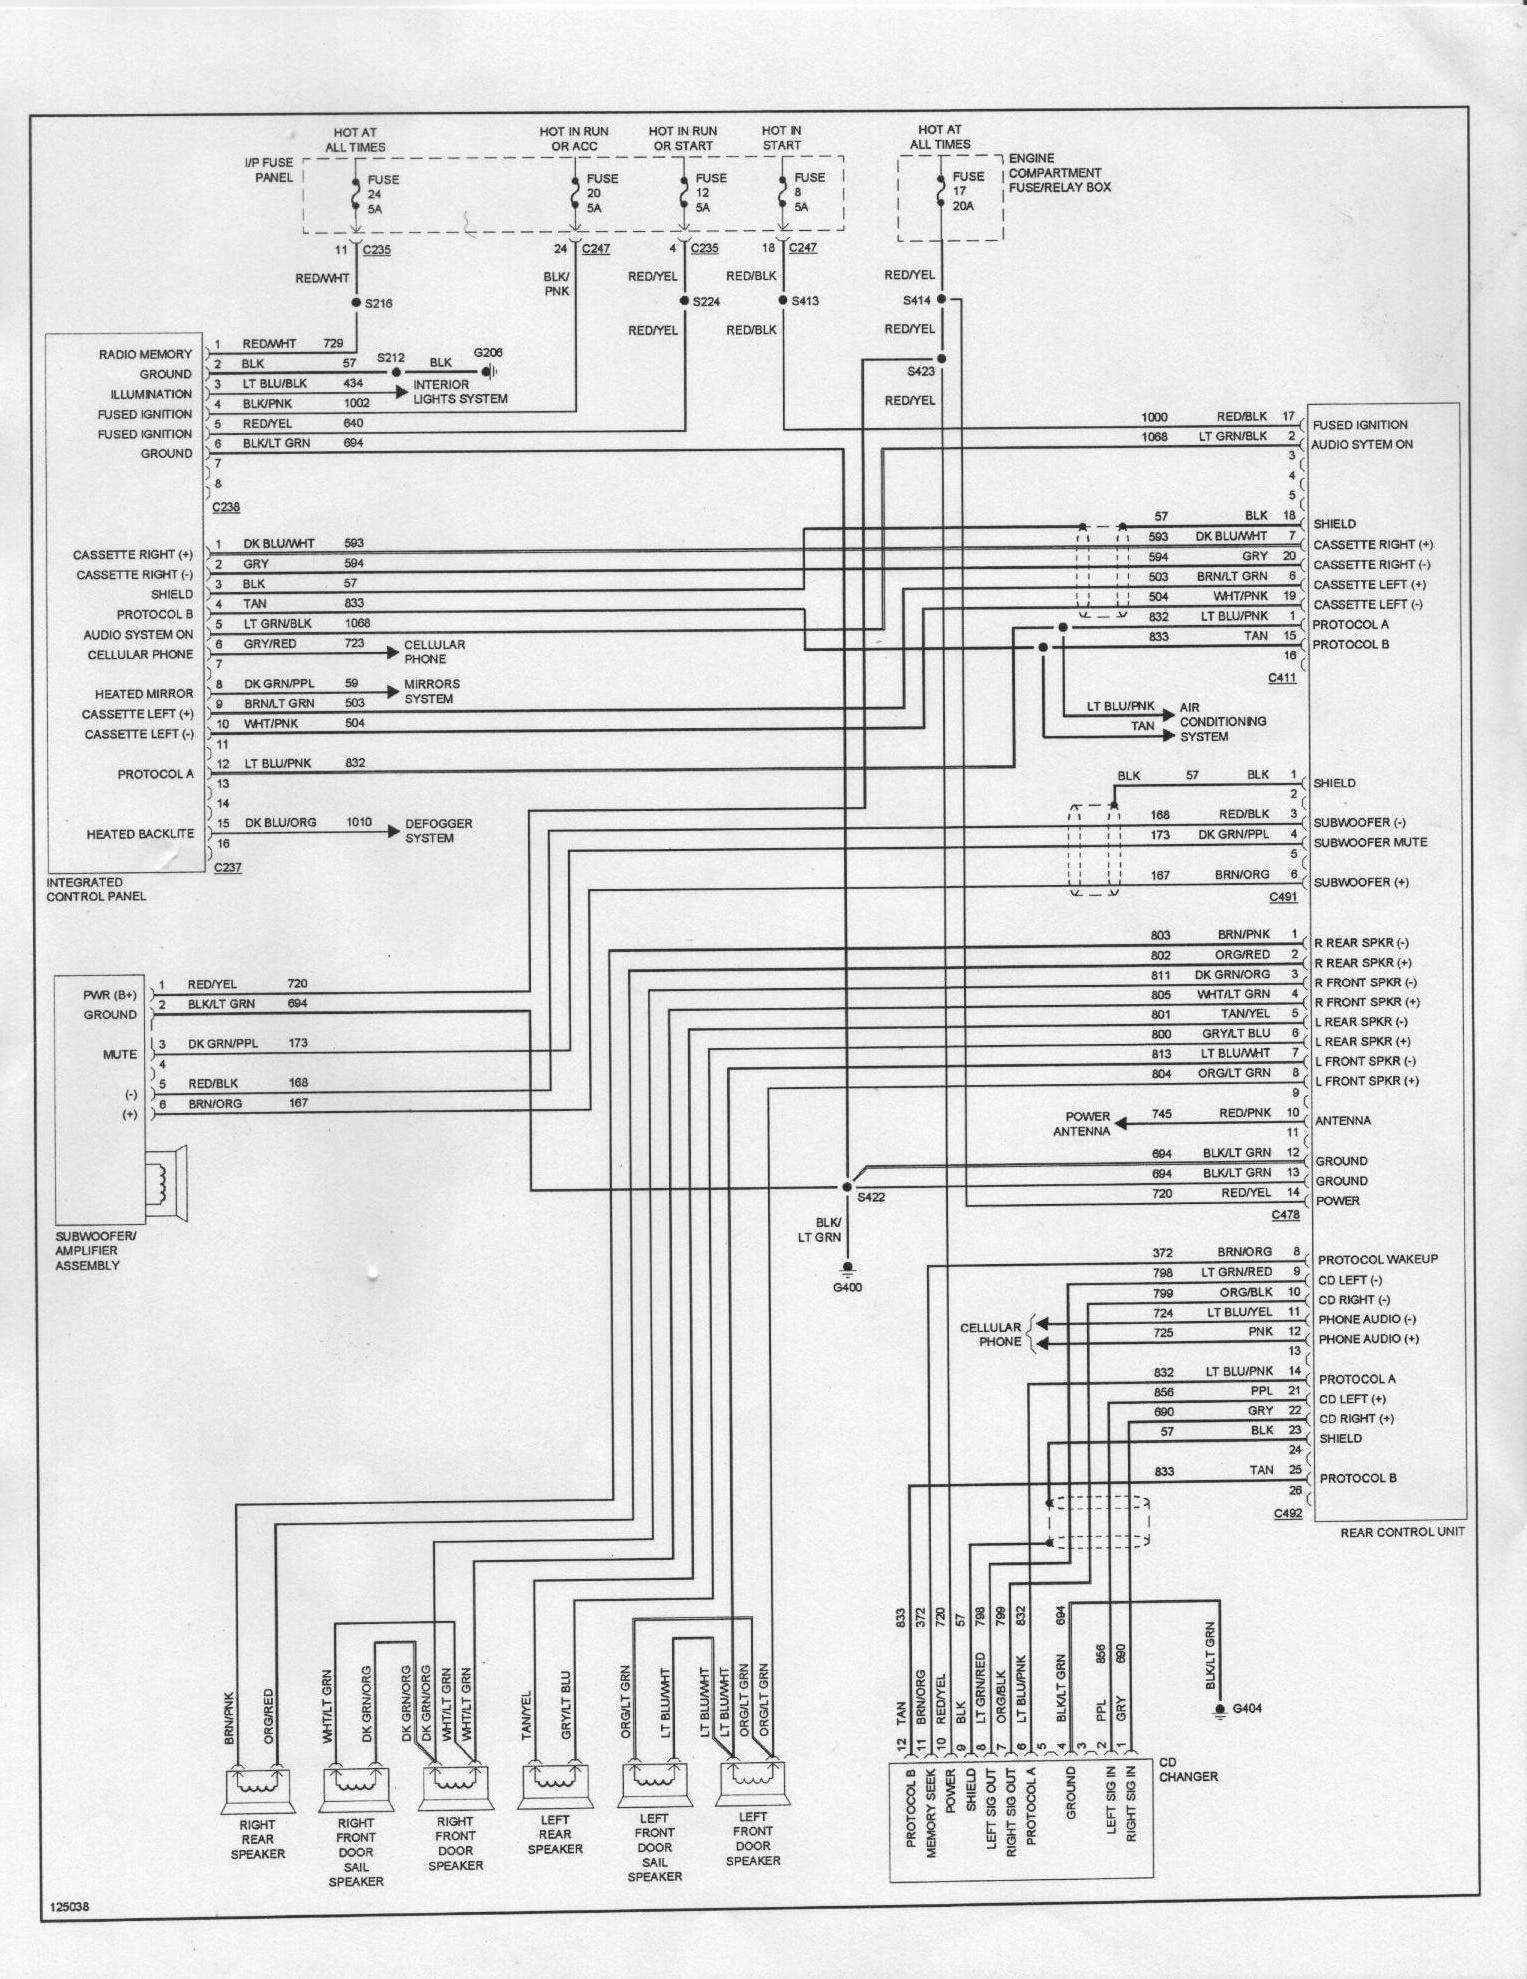 Wiring Diagram For A 05 Taurus - 18.4.depo-aqua.de • on 02 nissan xterra wiring diagram, 02 toyota celica wiring diagram, 02 ford taurus remote control, 2003 ford taurus cylinder diagram, 02 ford taurus lights, 02 chevy venture wiring diagram, 2000 ford taurus engine diagram, ford taurus 3.0 engine diagram, 02 bmw x5 wiring diagram, 2002 ford taurus parts diagram, 2003 ford taurus spark plug diagram, 02 mazda 626 wiring diagram, 2000 ford taurus spark plug diagram, 02 gmc sierra wiring diagram, 02 bmw 7 series wiring diagram, 02 ford taurus fuel gauge, 02 mazda tribute wiring diagram, 02 chevy silverado wiring diagram, 02 ford taurus serpentine belt diagram, 2001 ford taurus engine diagram,